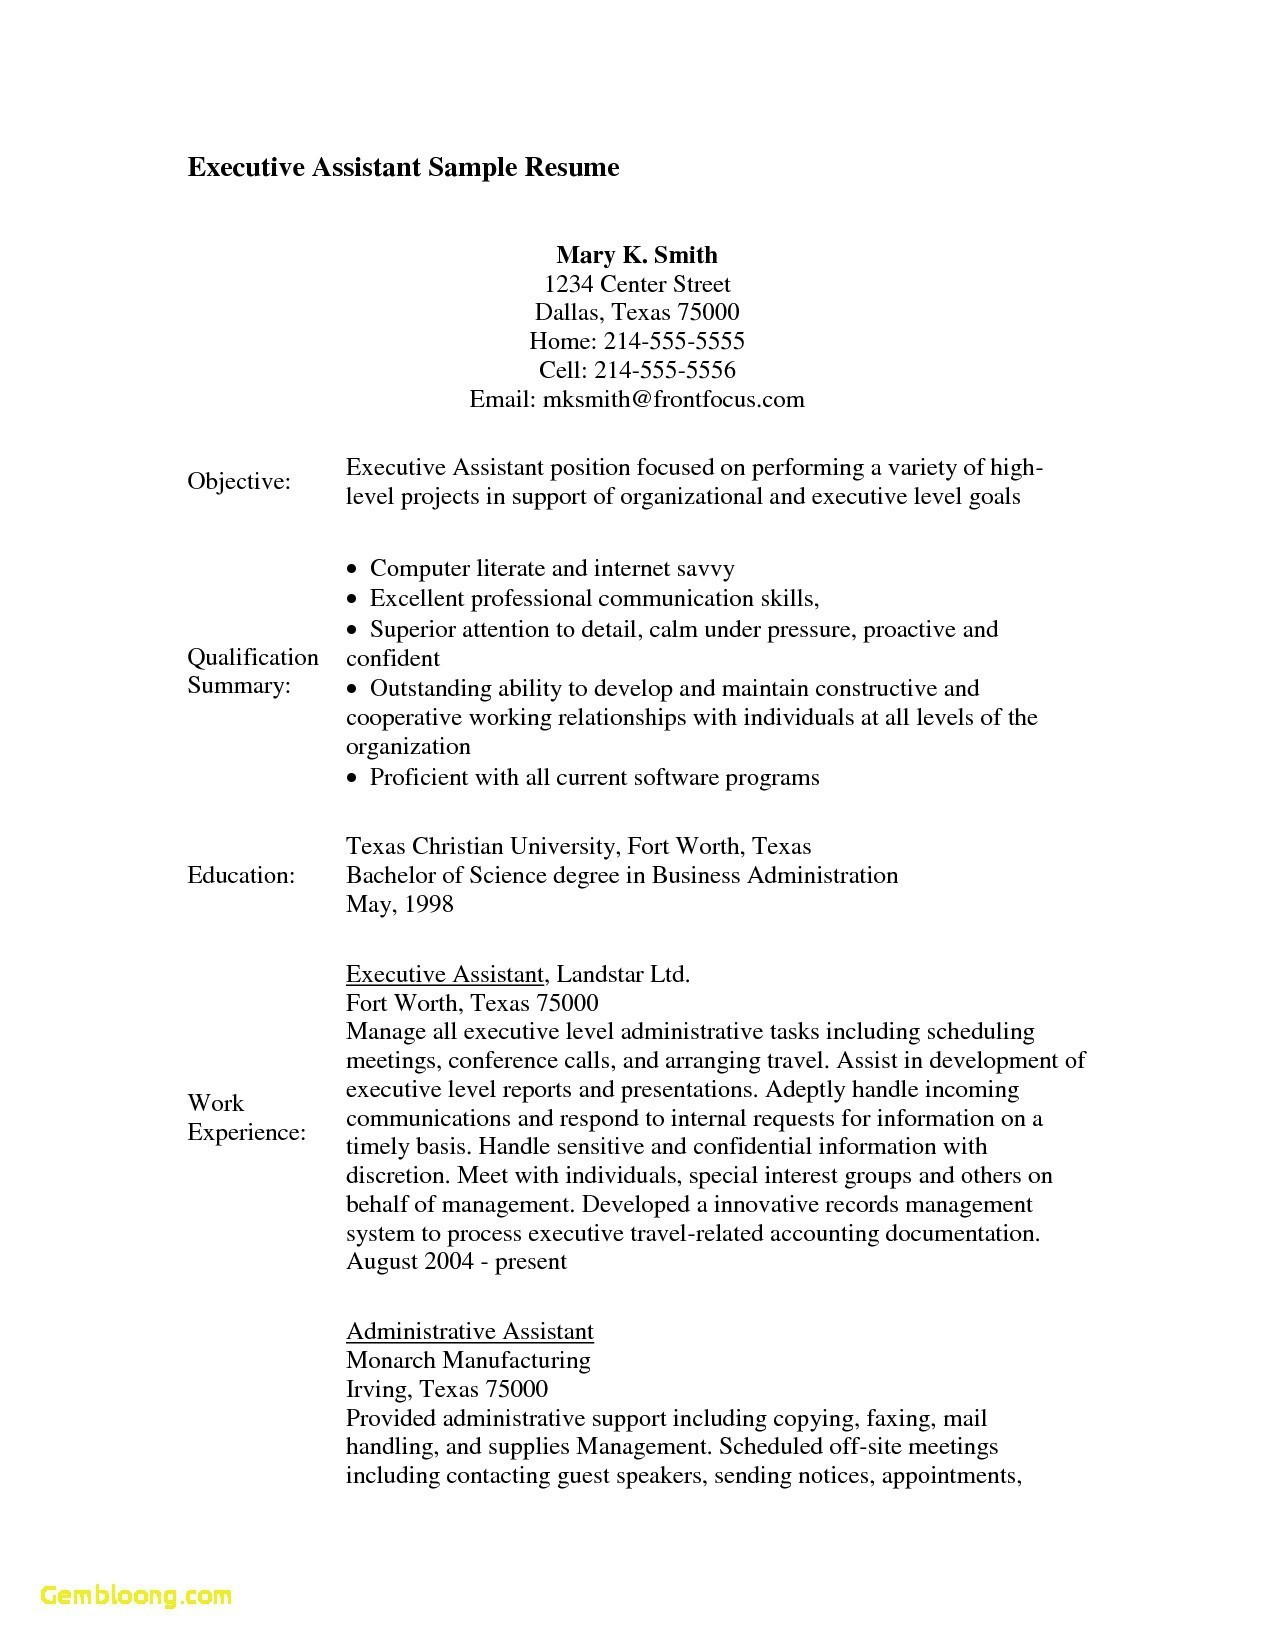 Medical assistant Resume Objective - Medical assistant Resume New Inspirational Medical assistant Resumes